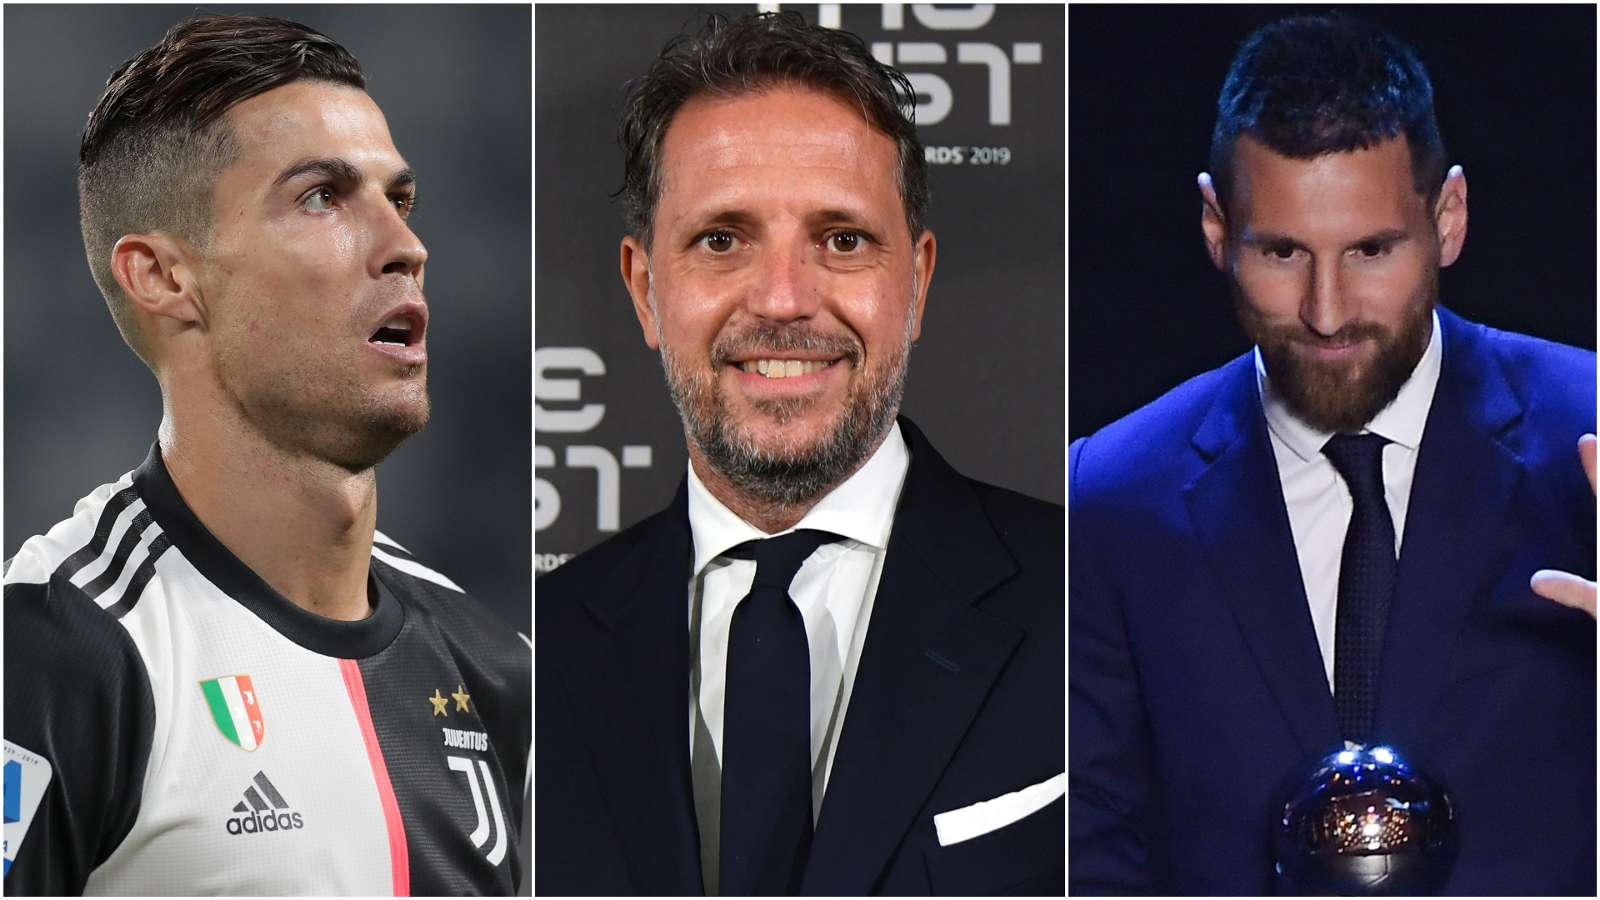 Juventus: Barcelona and Real Madrid control the Ballon d'Or